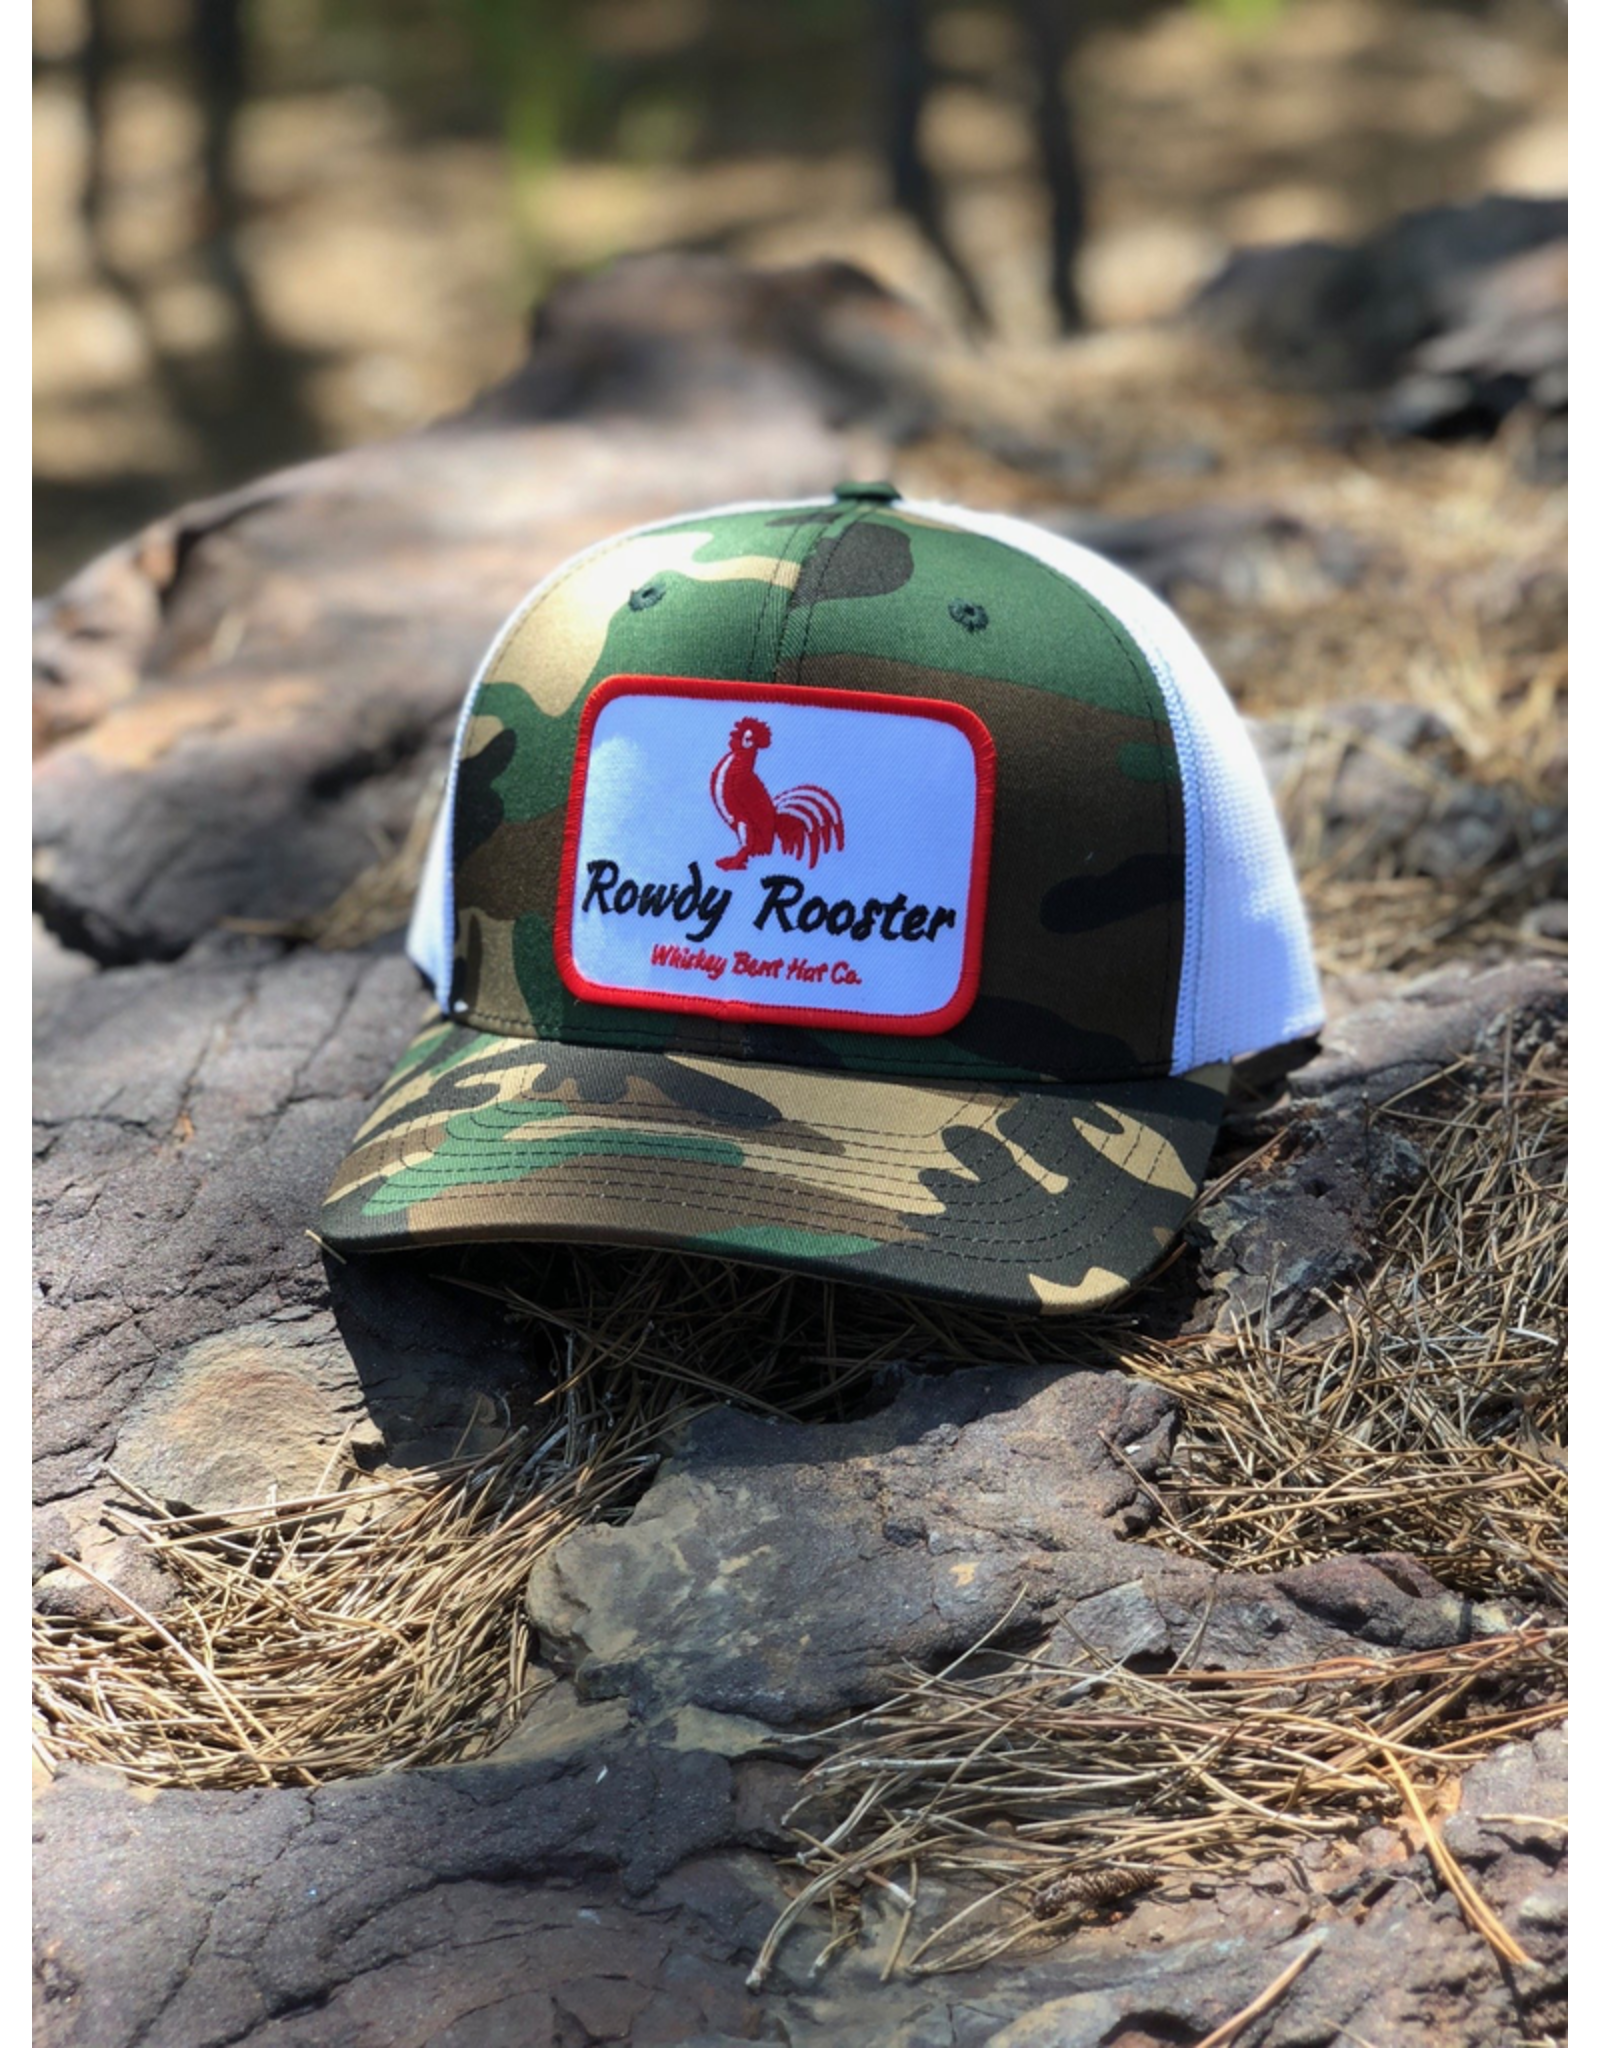 Hats WHISKEY BENT HAT CO.<br /> Rowdy Rooster